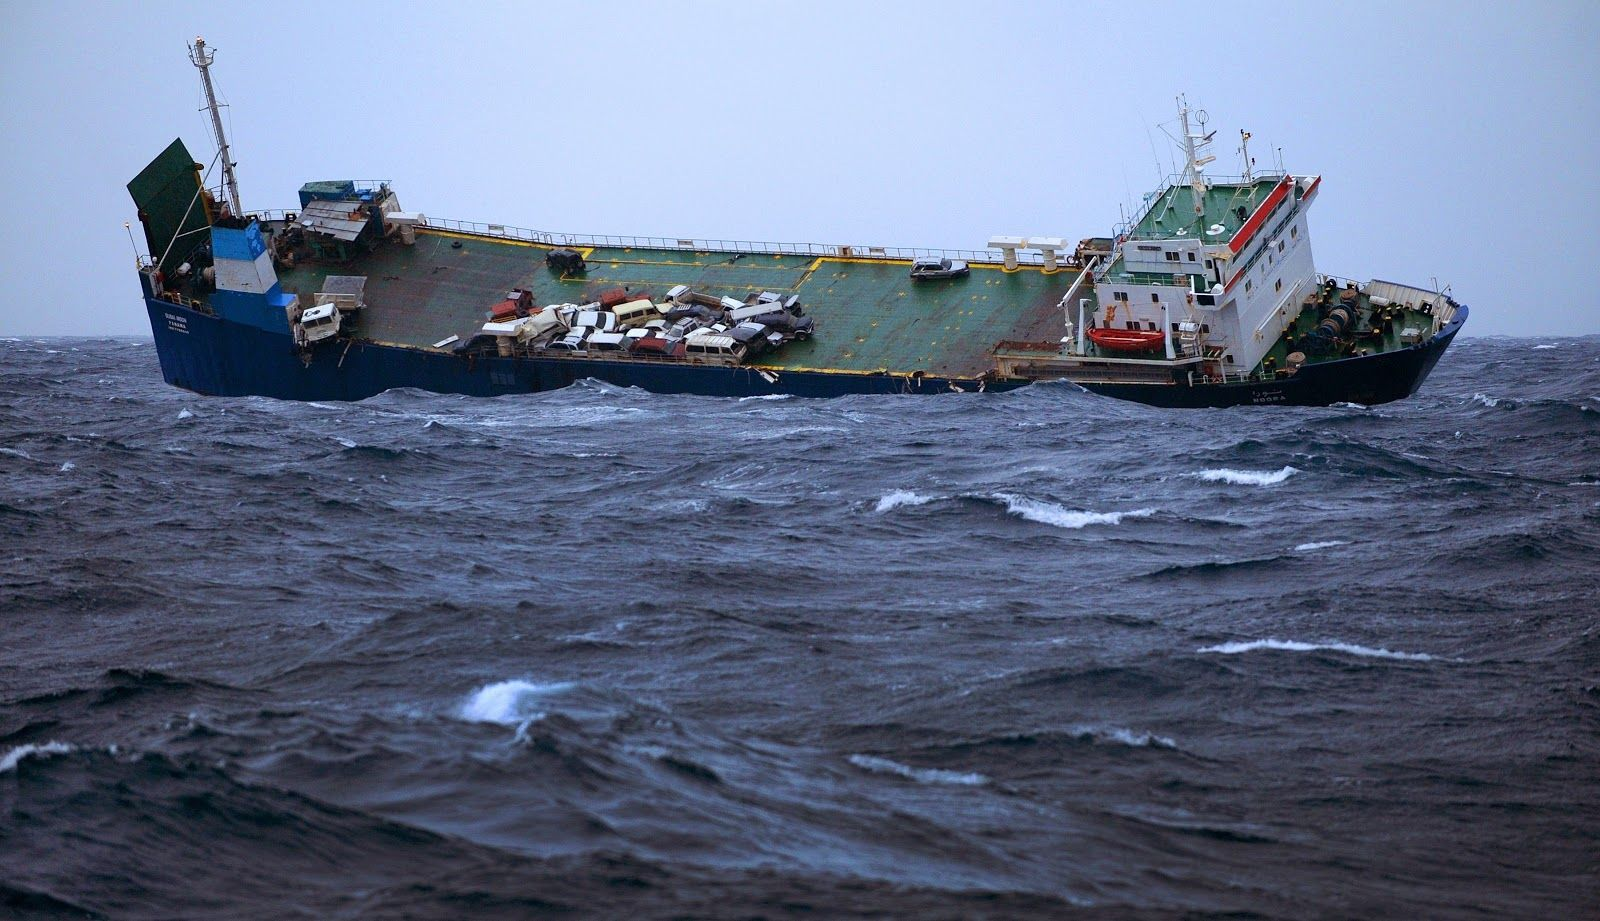 Largest Cargo Ship | The master of a cargo ship which sank